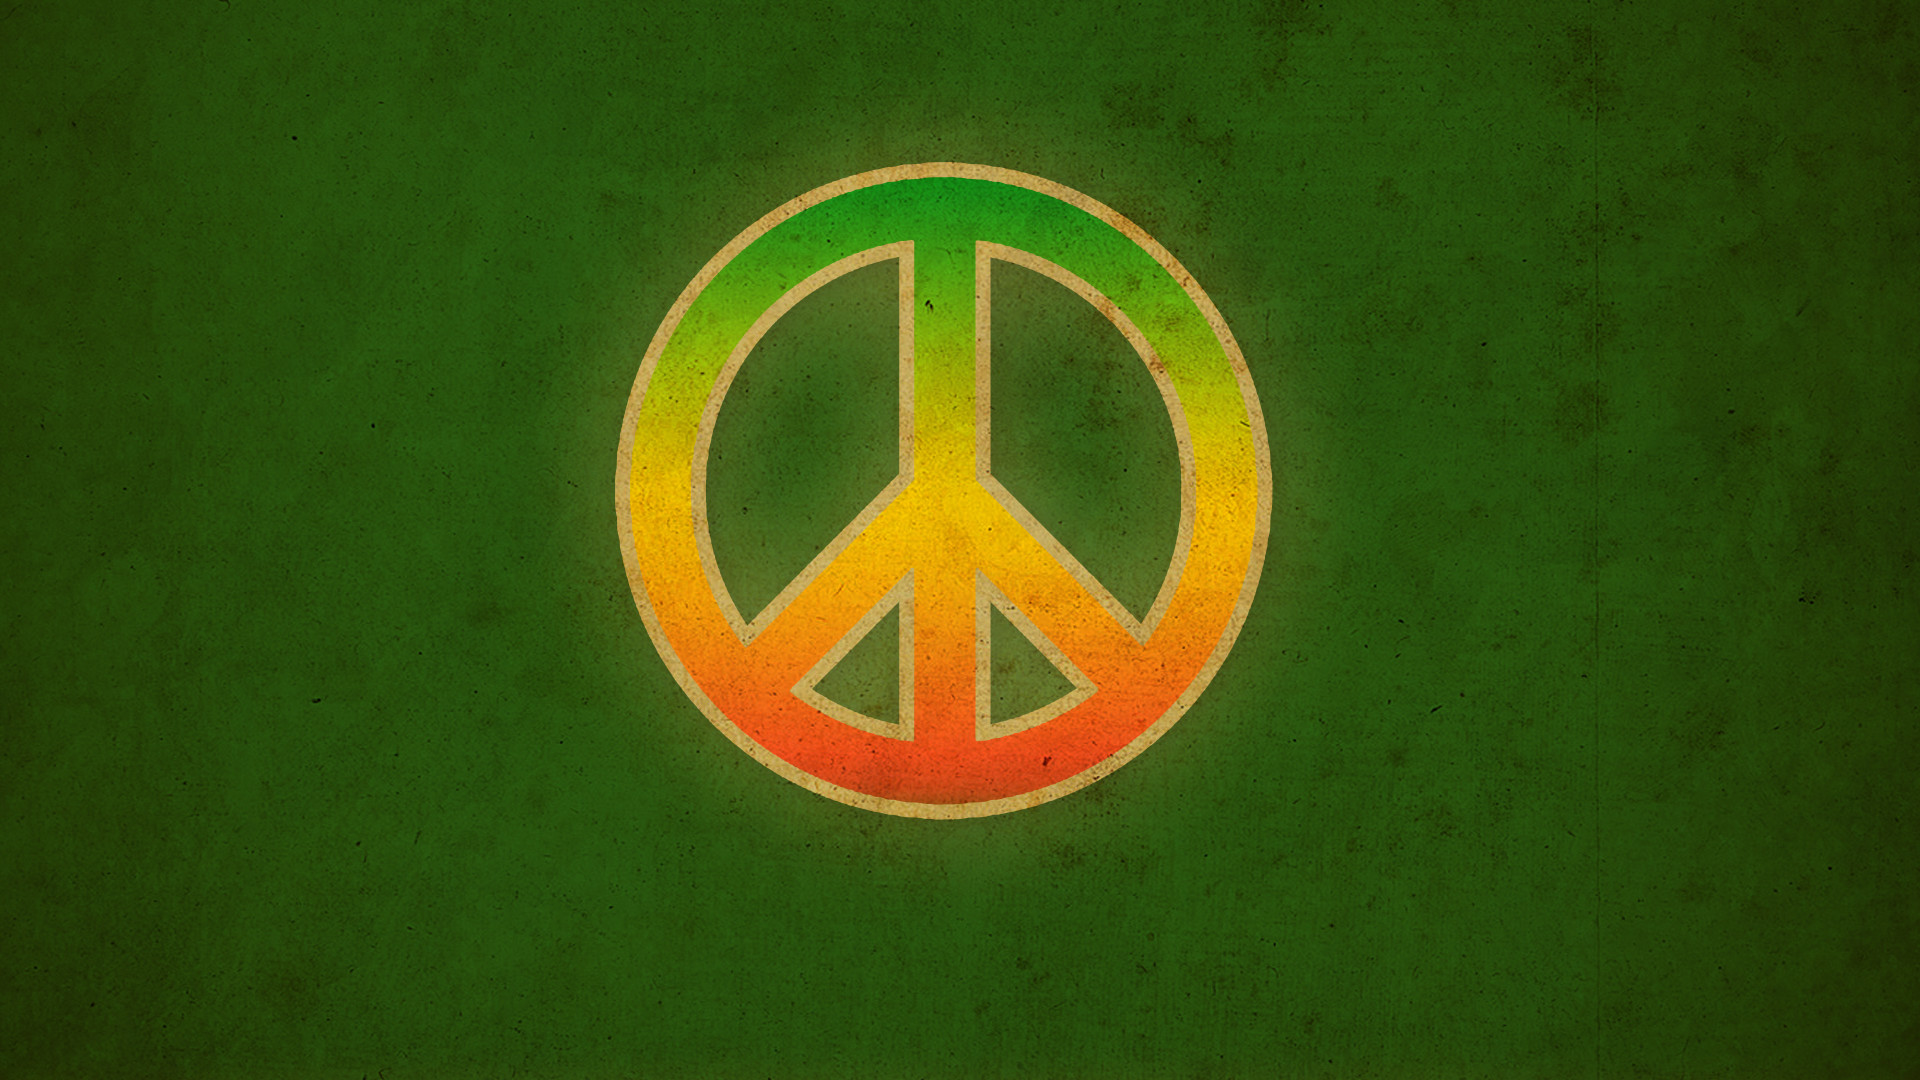 Res: 1920x1080,  Free Download Peace Sign Backgrounds HD Wallpapers, Backgrounds.